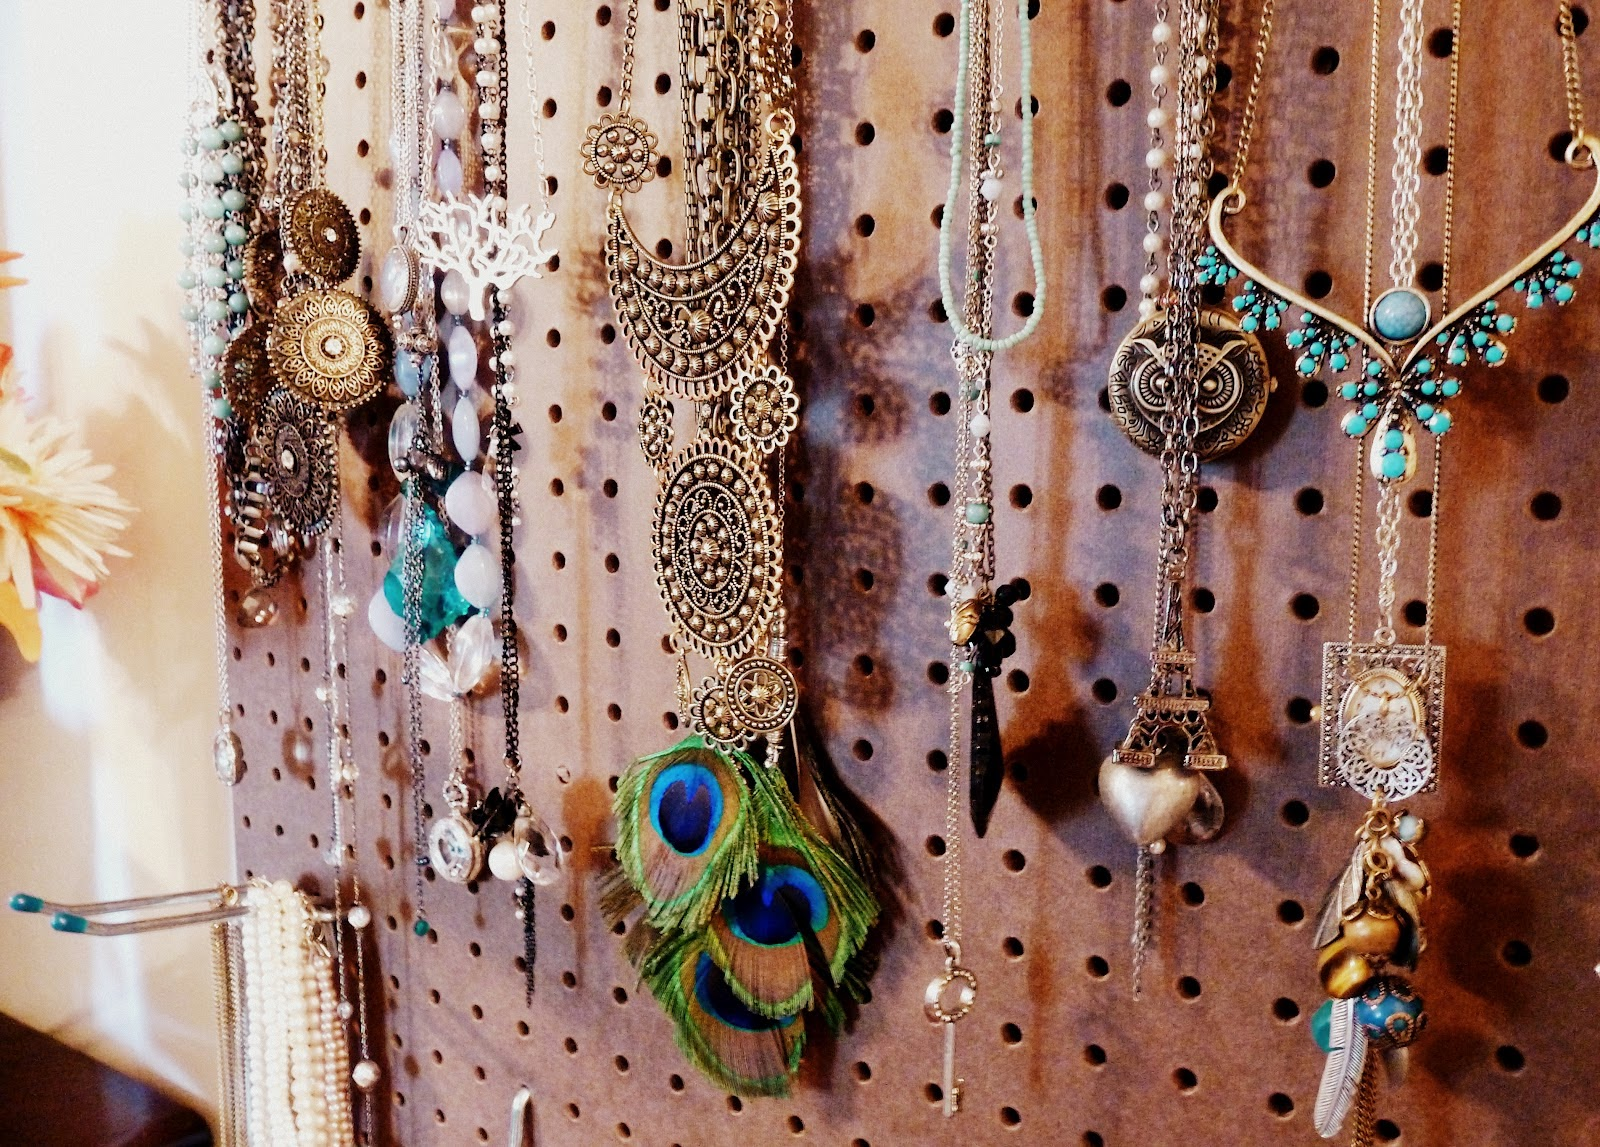 Contemporary jewelry hanger